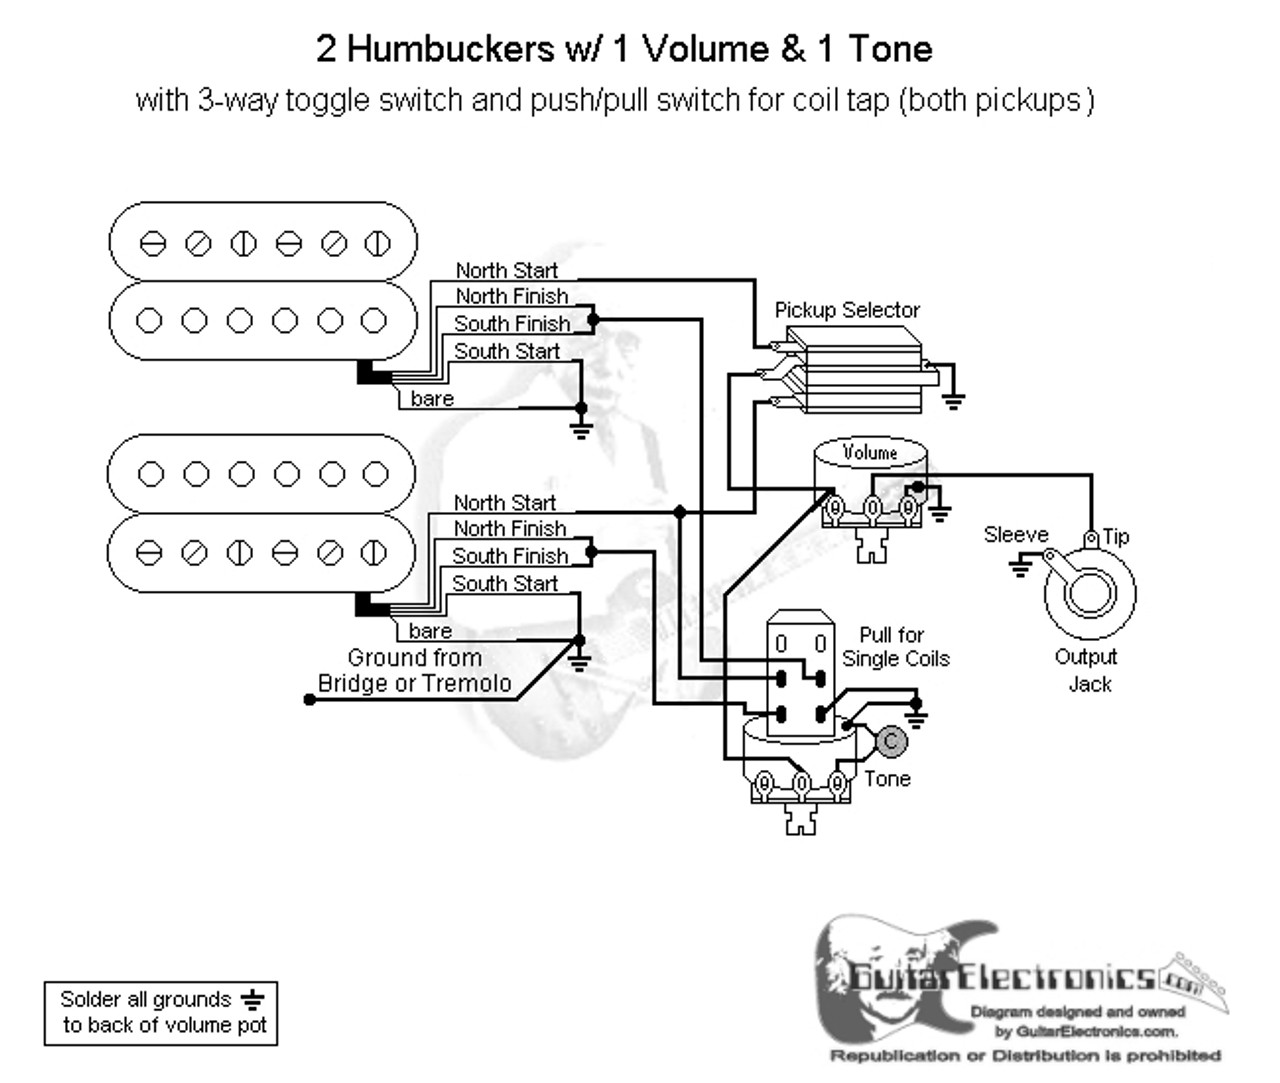 small resolution of 2 humbuckers 3 way toggle switch 1 volume 1 tone coil tap mix wd2hh3t11 01 45715 1470694374 jpg